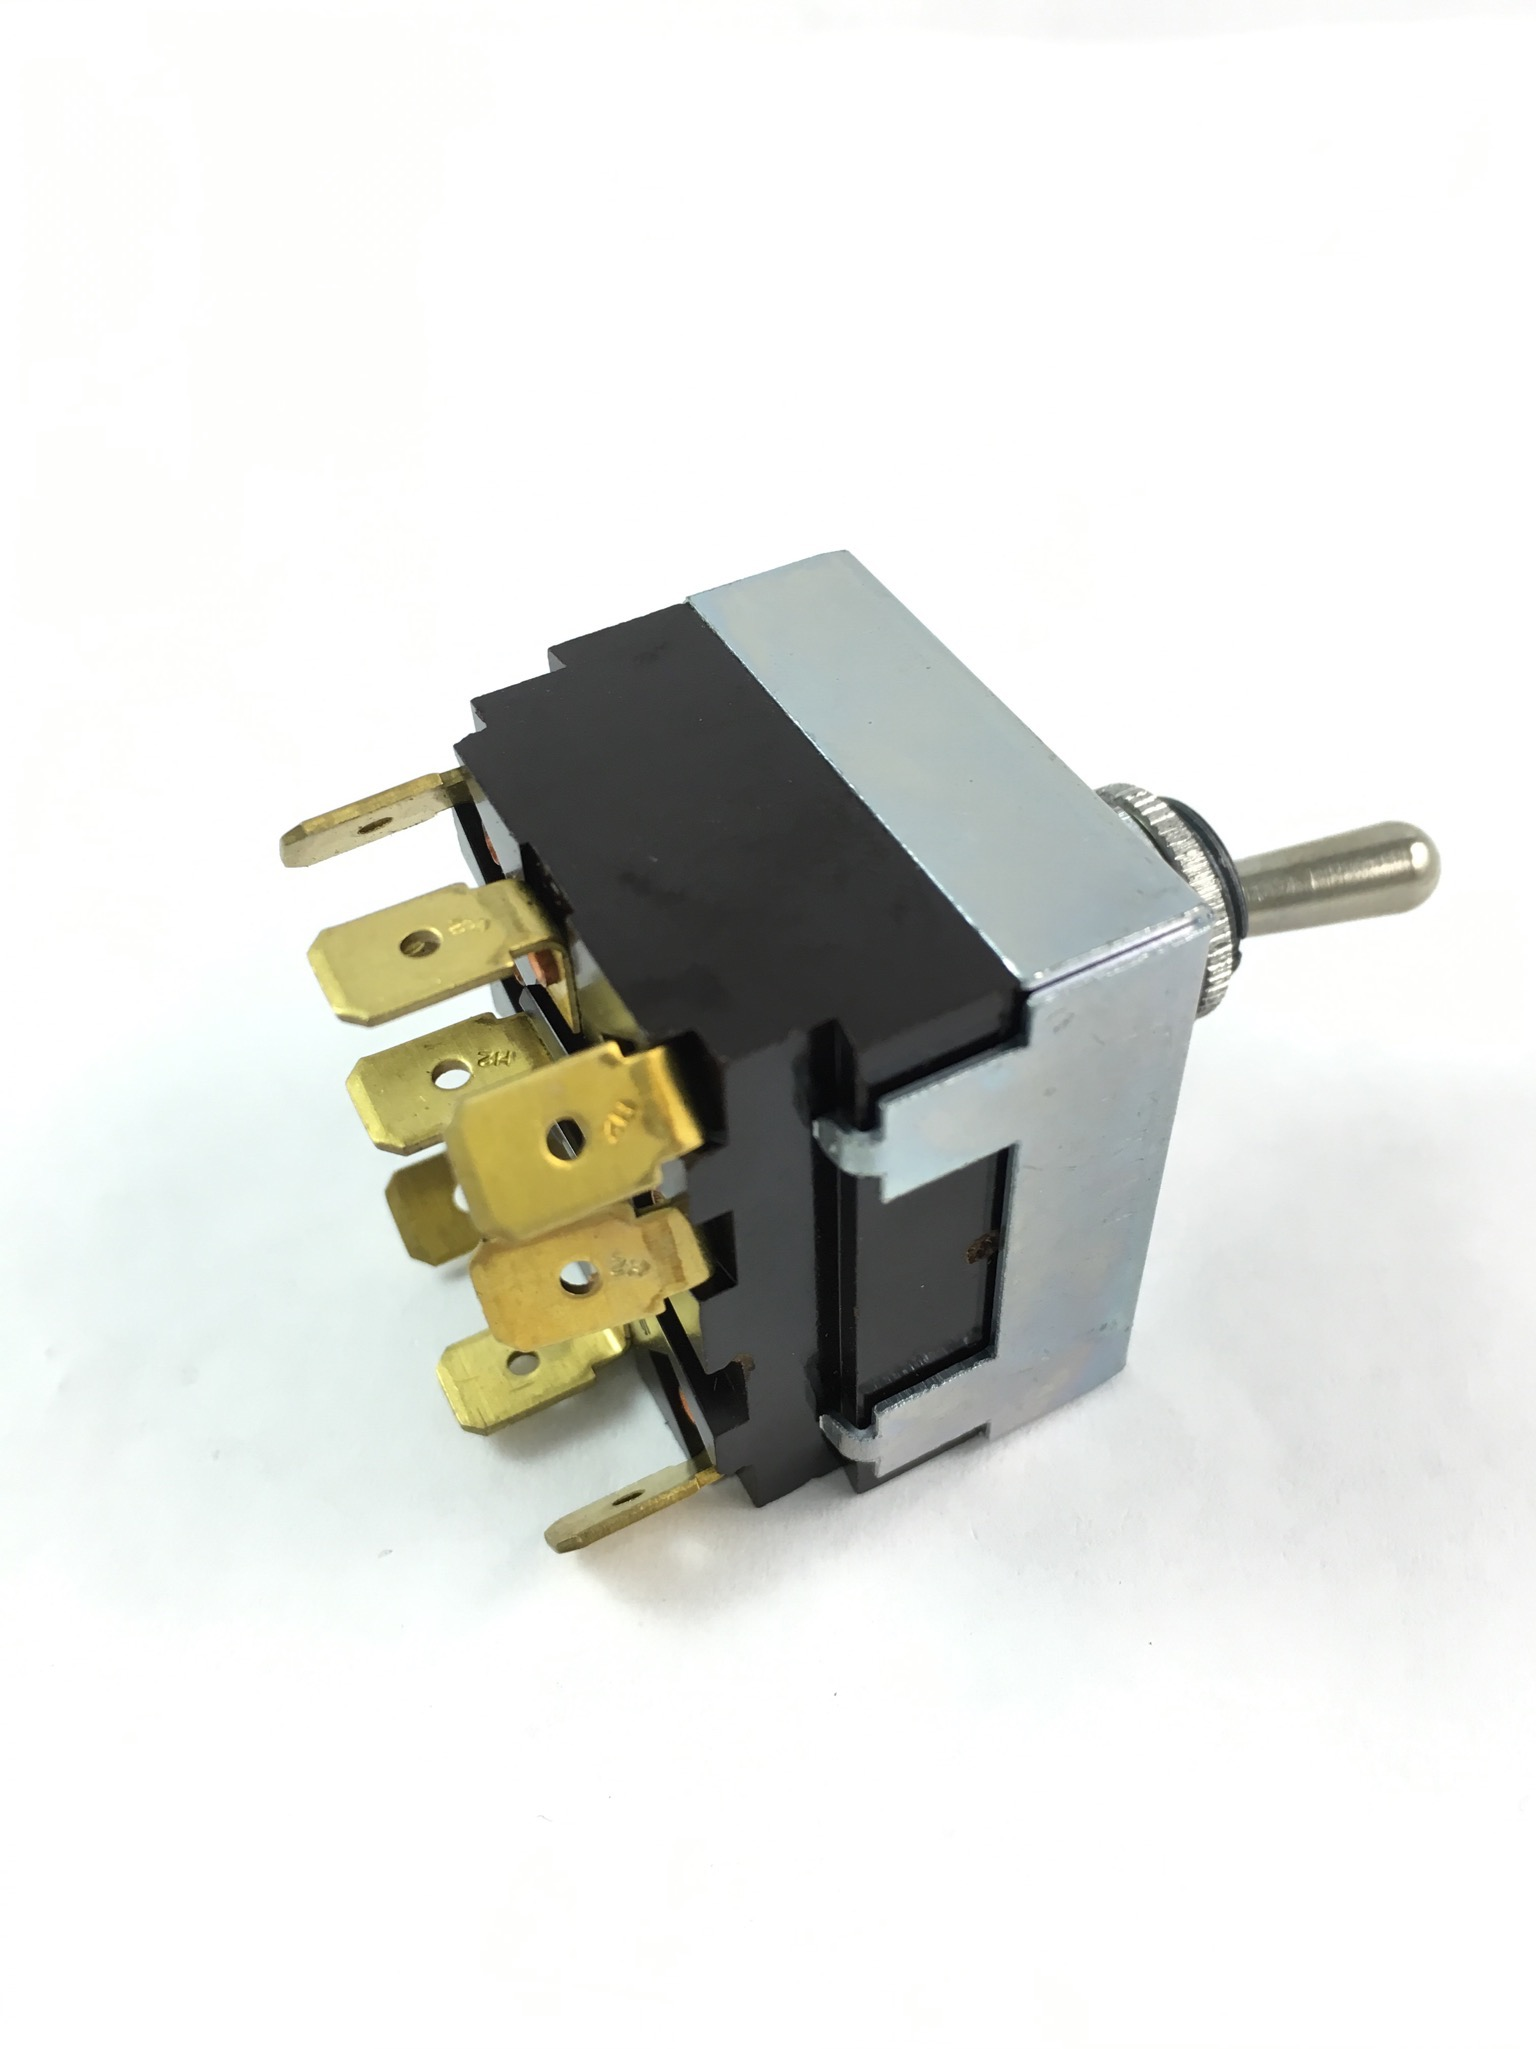 Orvac Electronics Toggle Switch 20 Amp Sealed Screw Terminal Spdt Onoffon On Off 3pdt 250 17amp